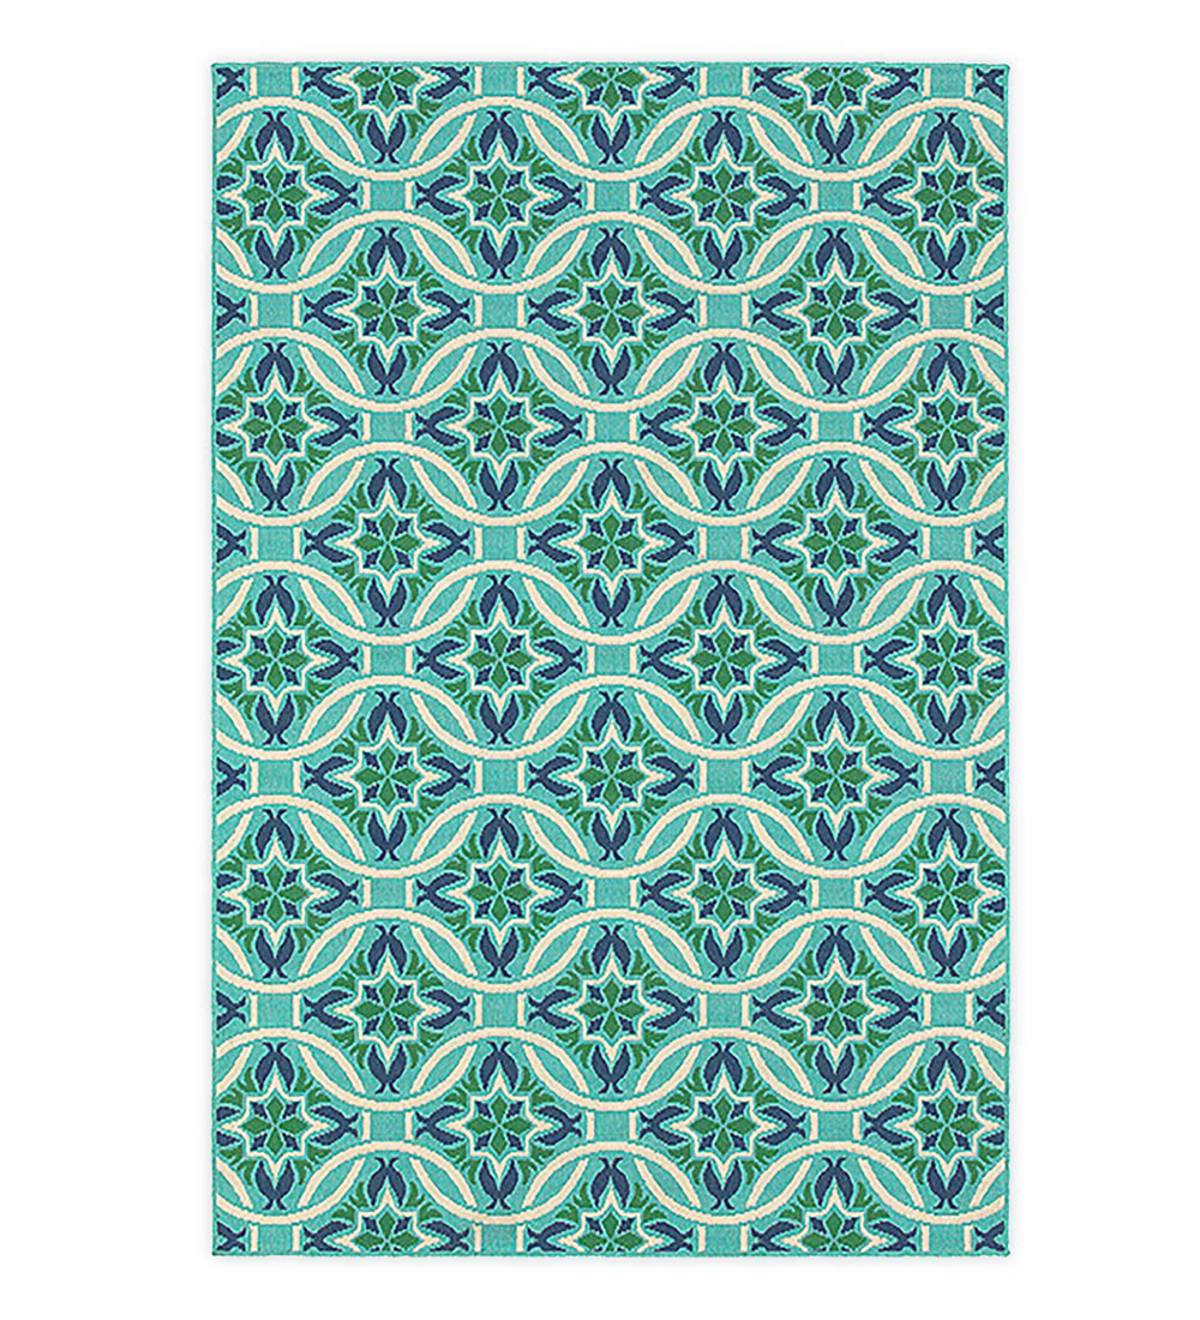 Indoor/Outdoor Lexington Medallion Rug